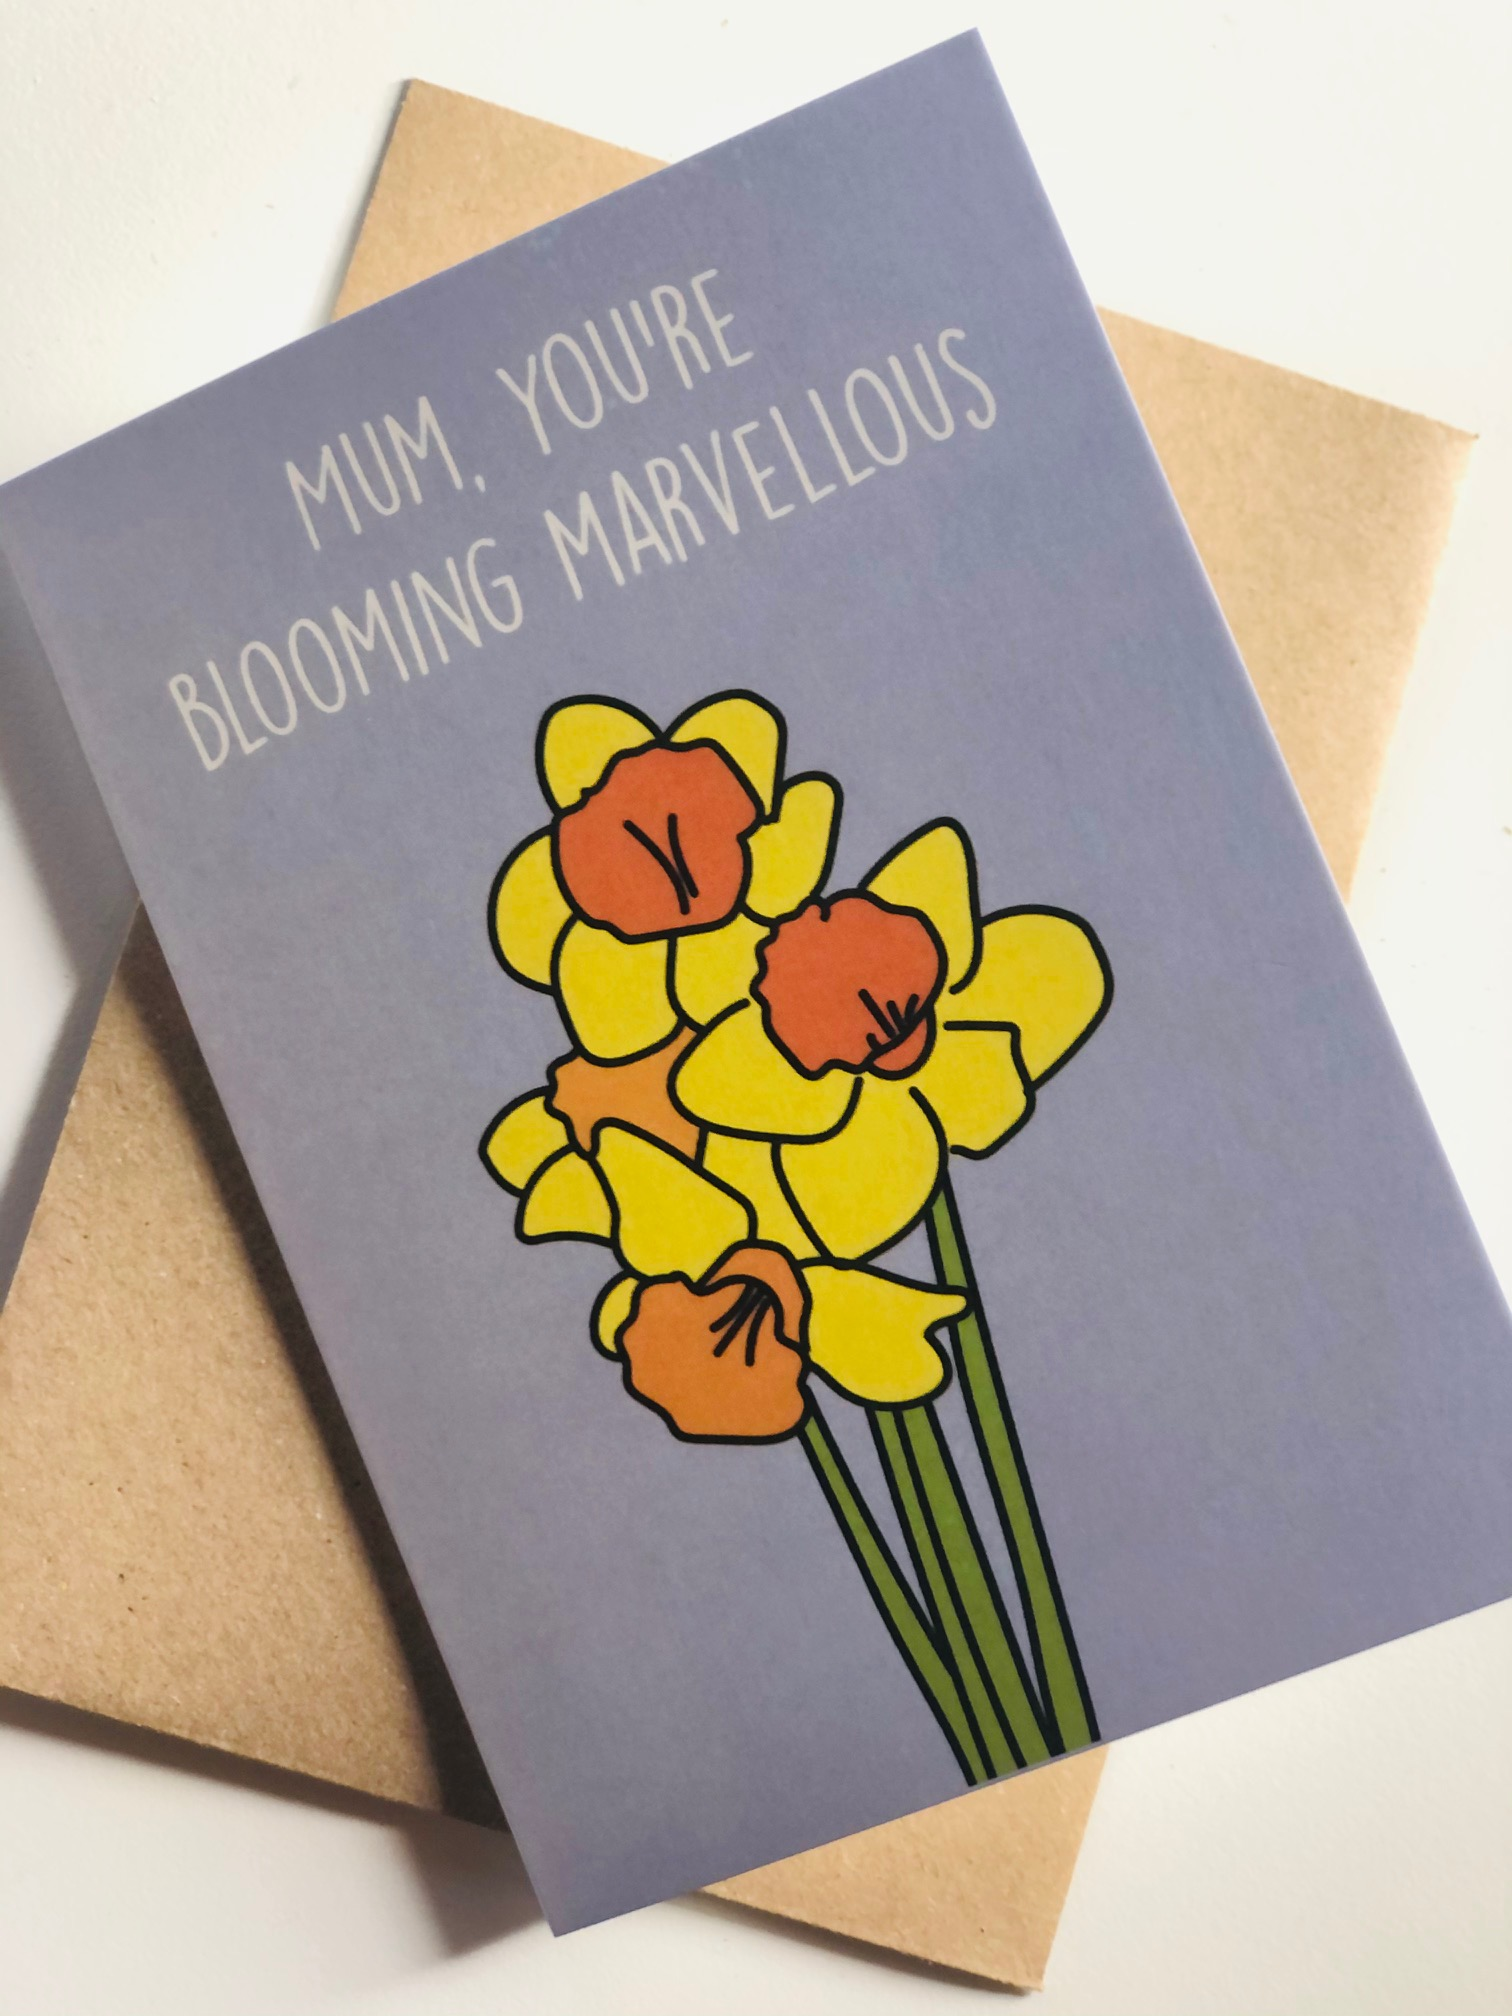 'Blooming Marvellous' Greetings Card by Emma